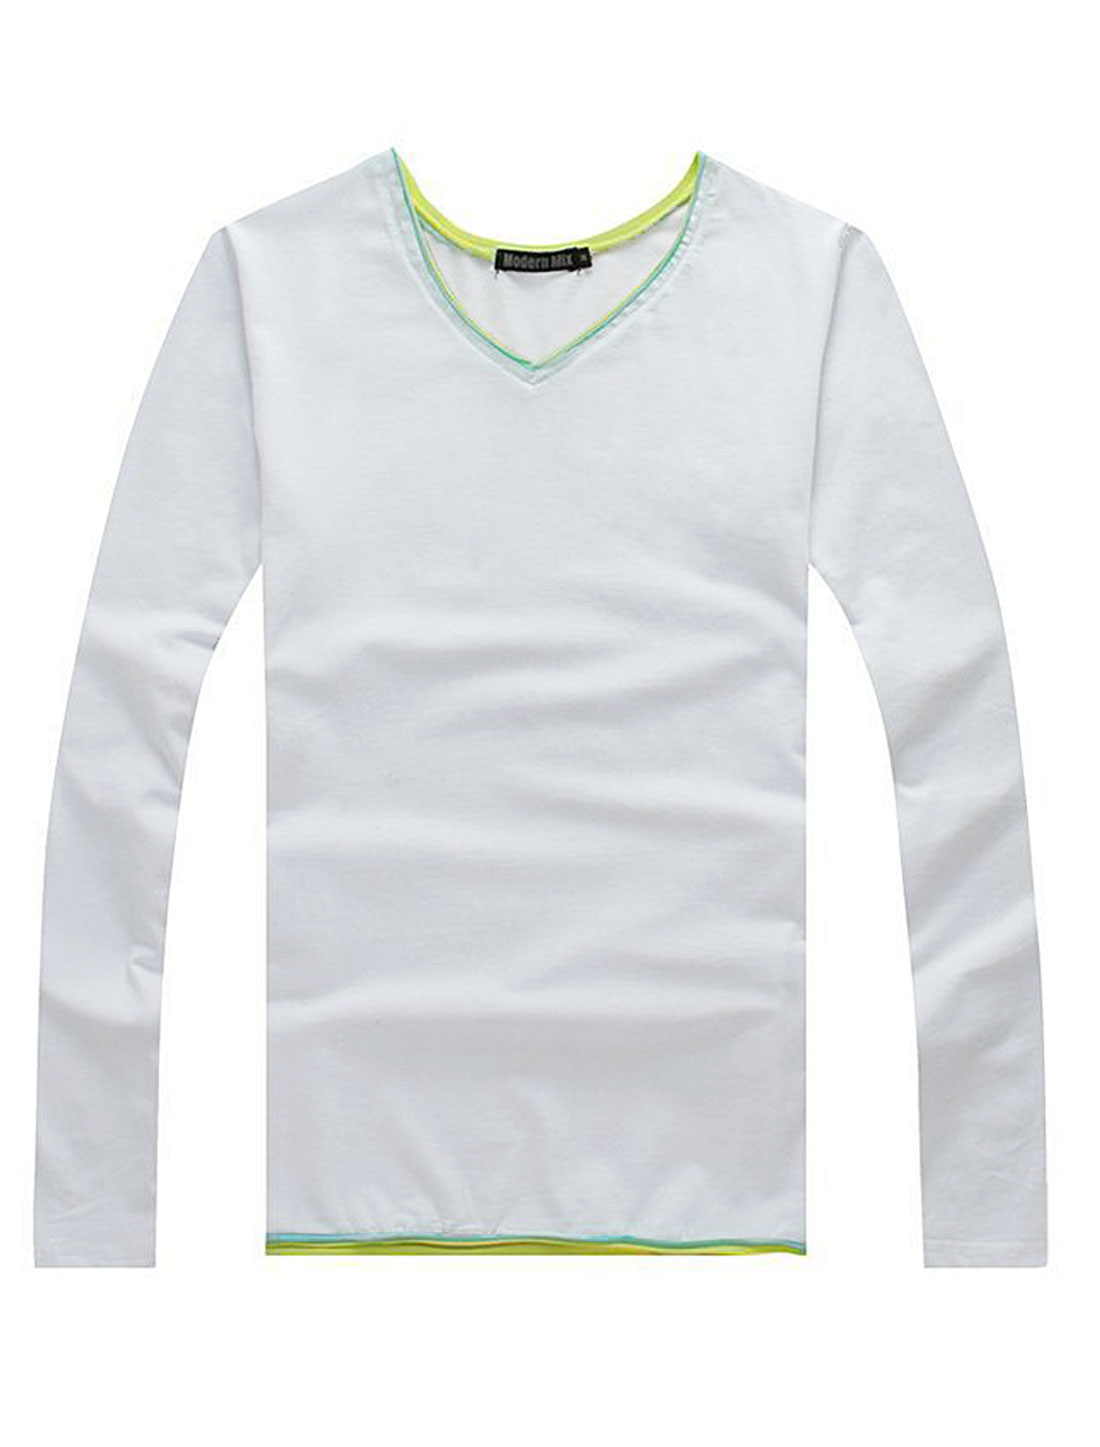 Soft Patched Detail Pullover Casual Shirt for Men White M